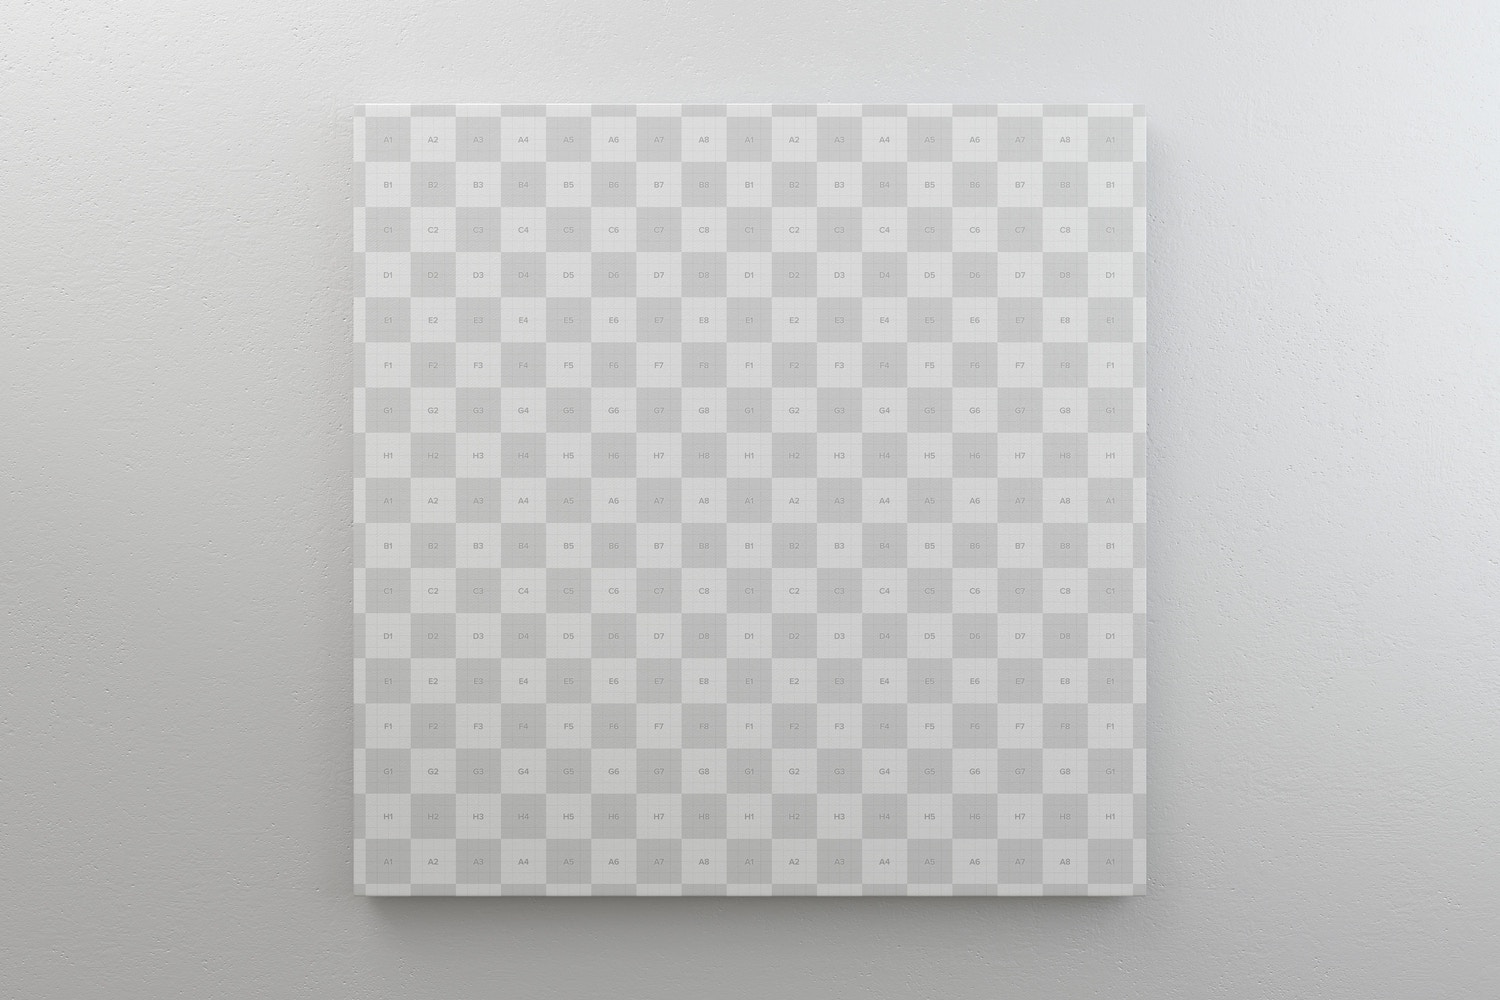 Square Canvas Mockup Hanging on Wall, Front View